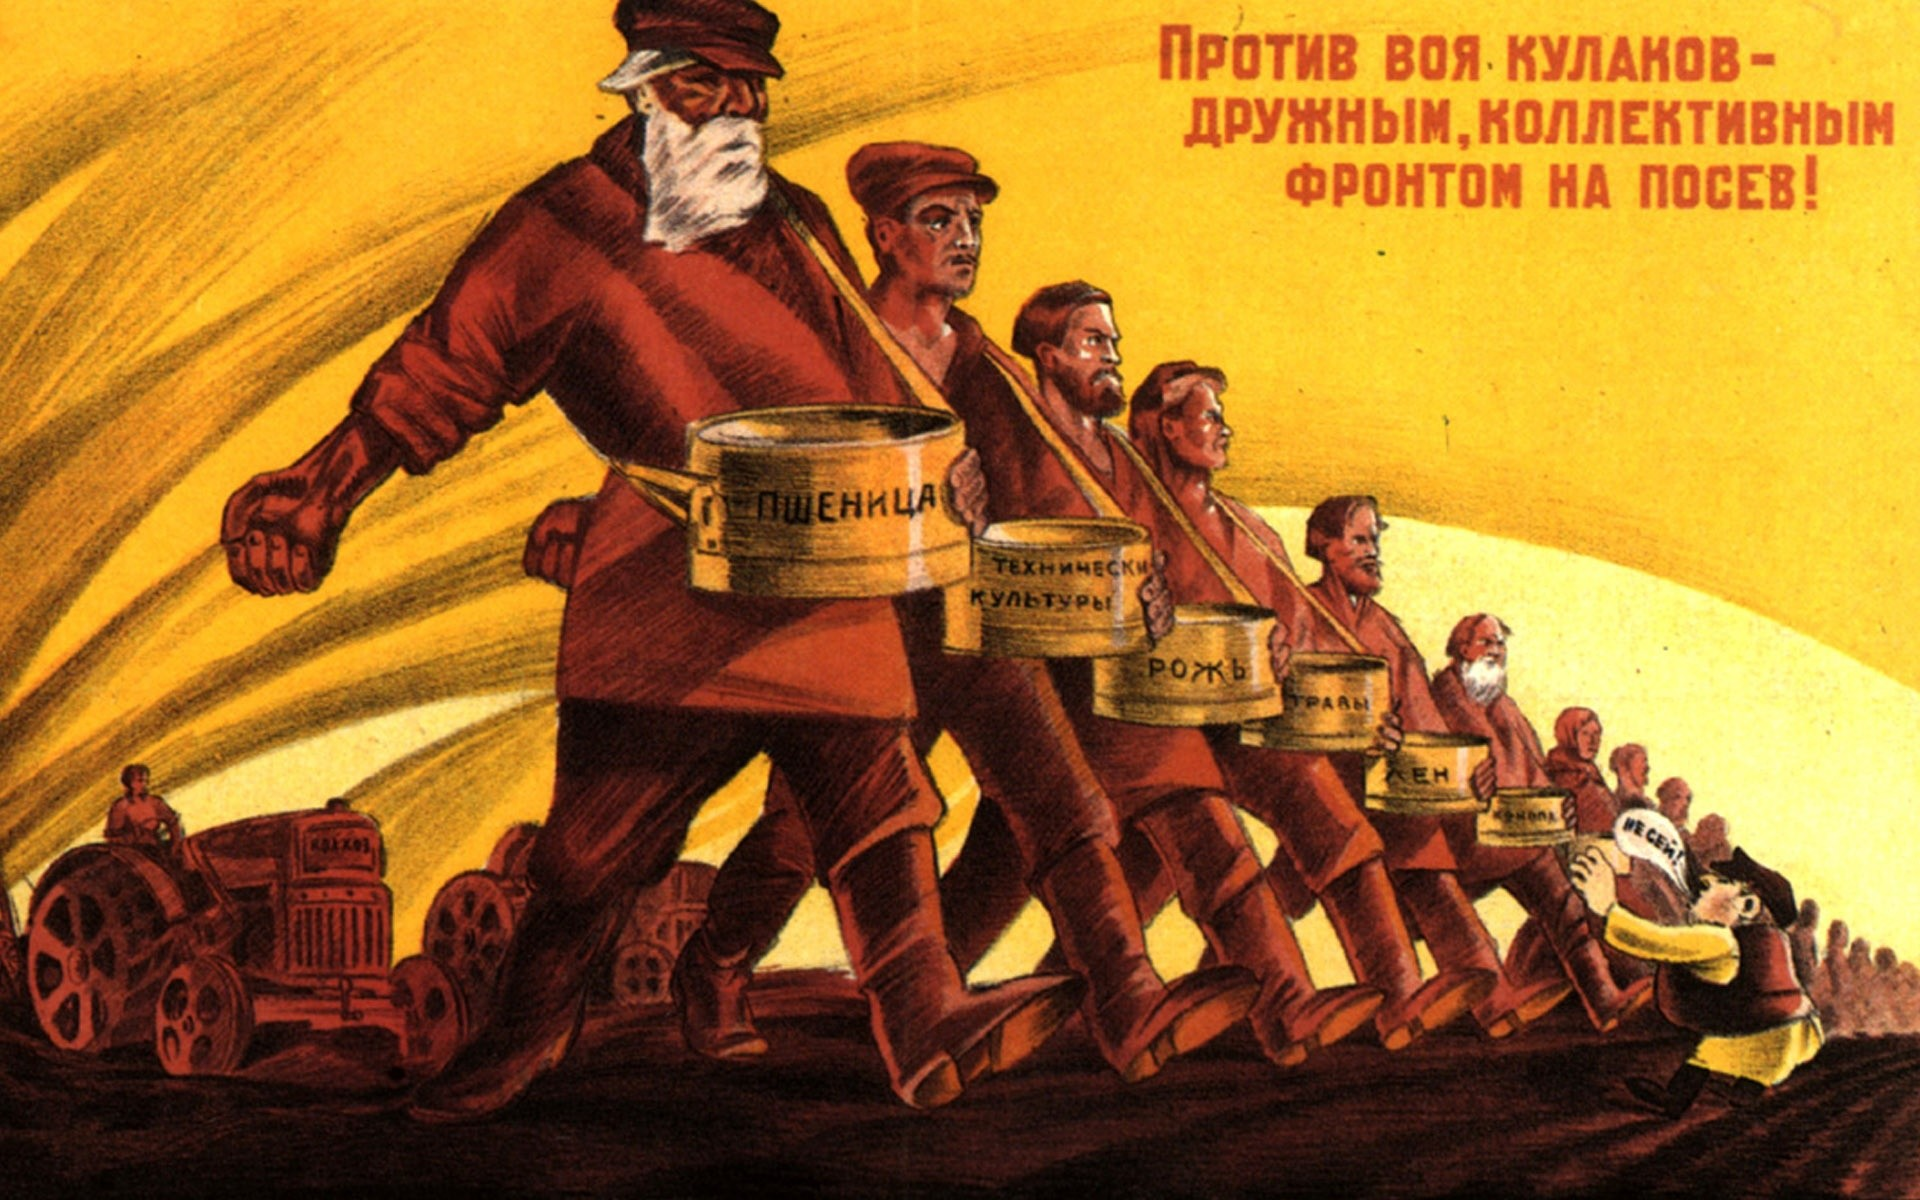 1920x1200 ru - Soviet posters: Soviet collective farmers against capitalism!